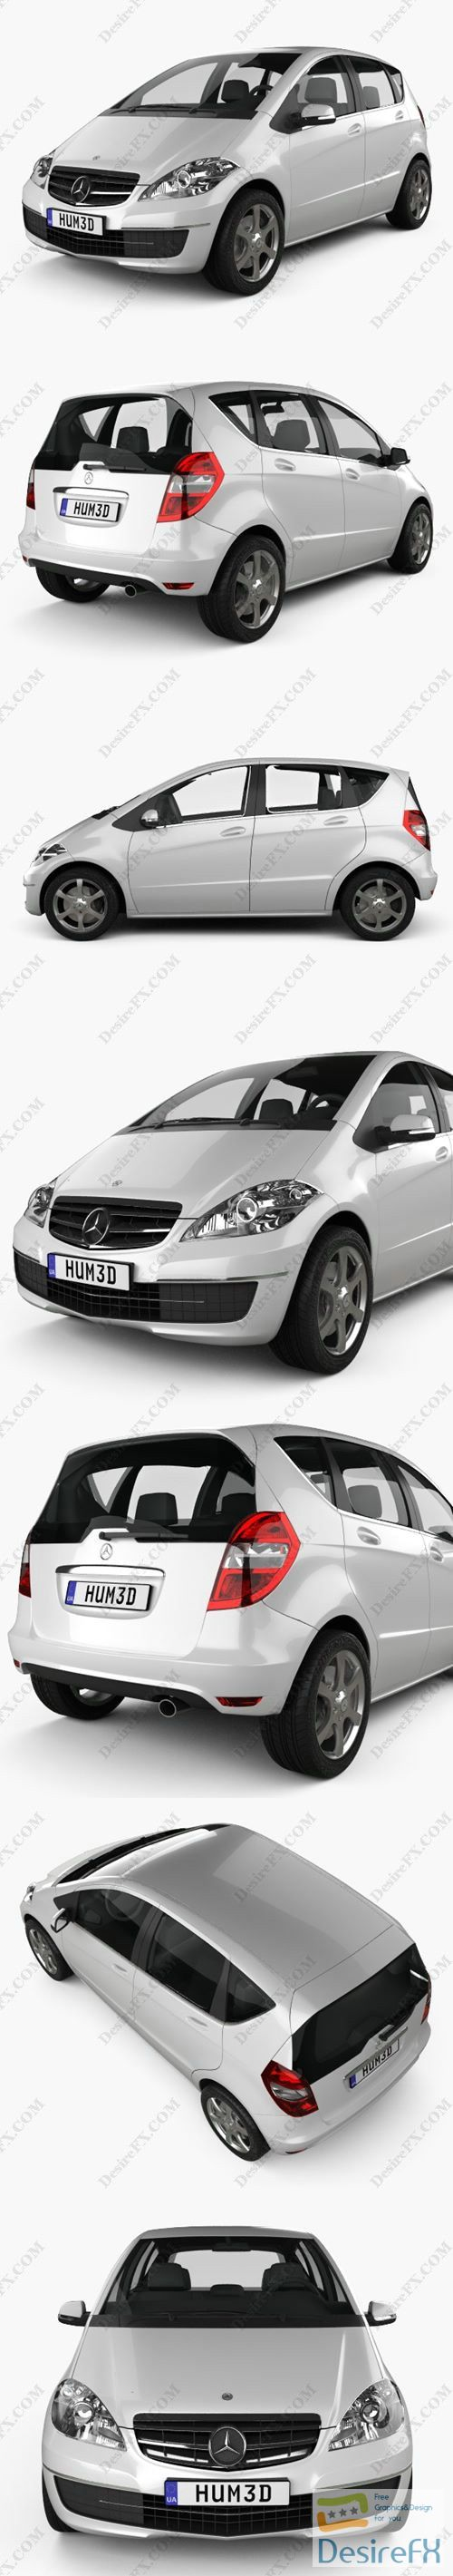 Mercedes-Benz A-Class 5-door 2010 3D Model